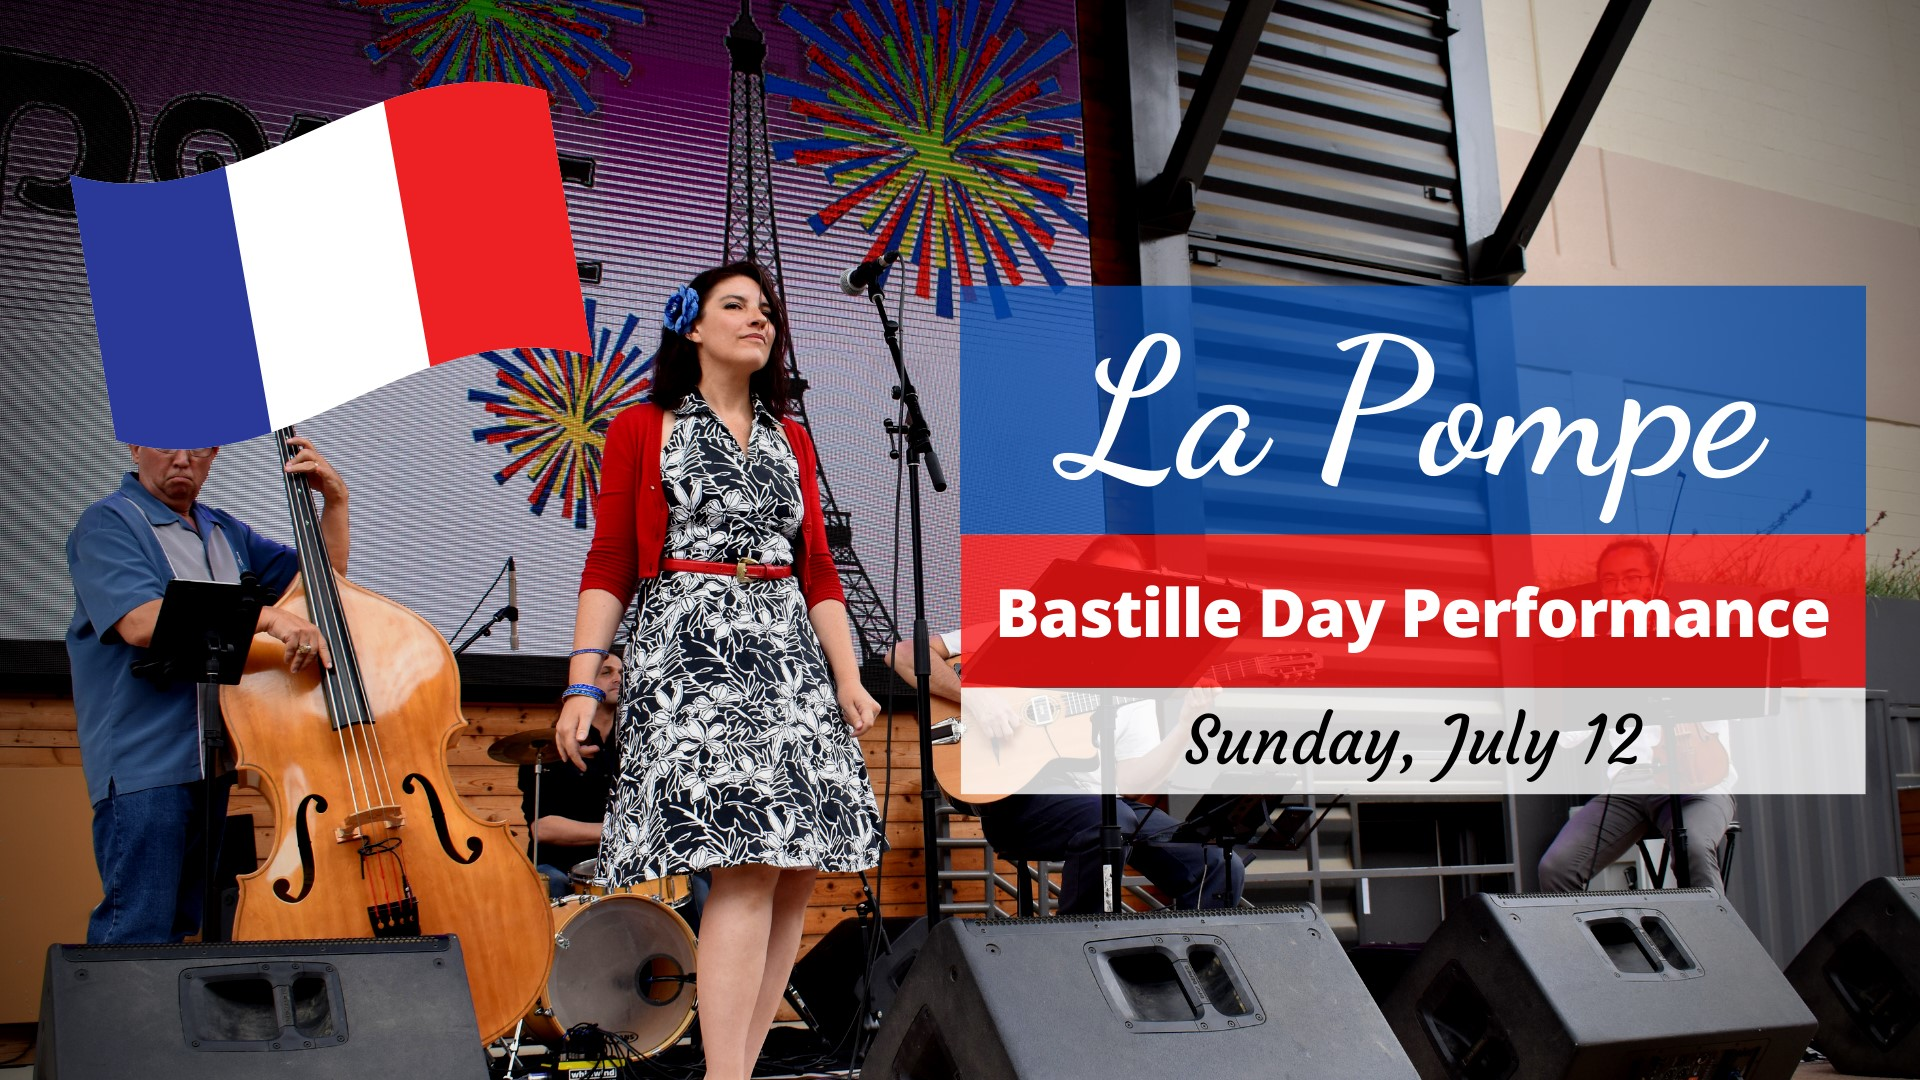 La Pompe Bastille Day Performance - hero